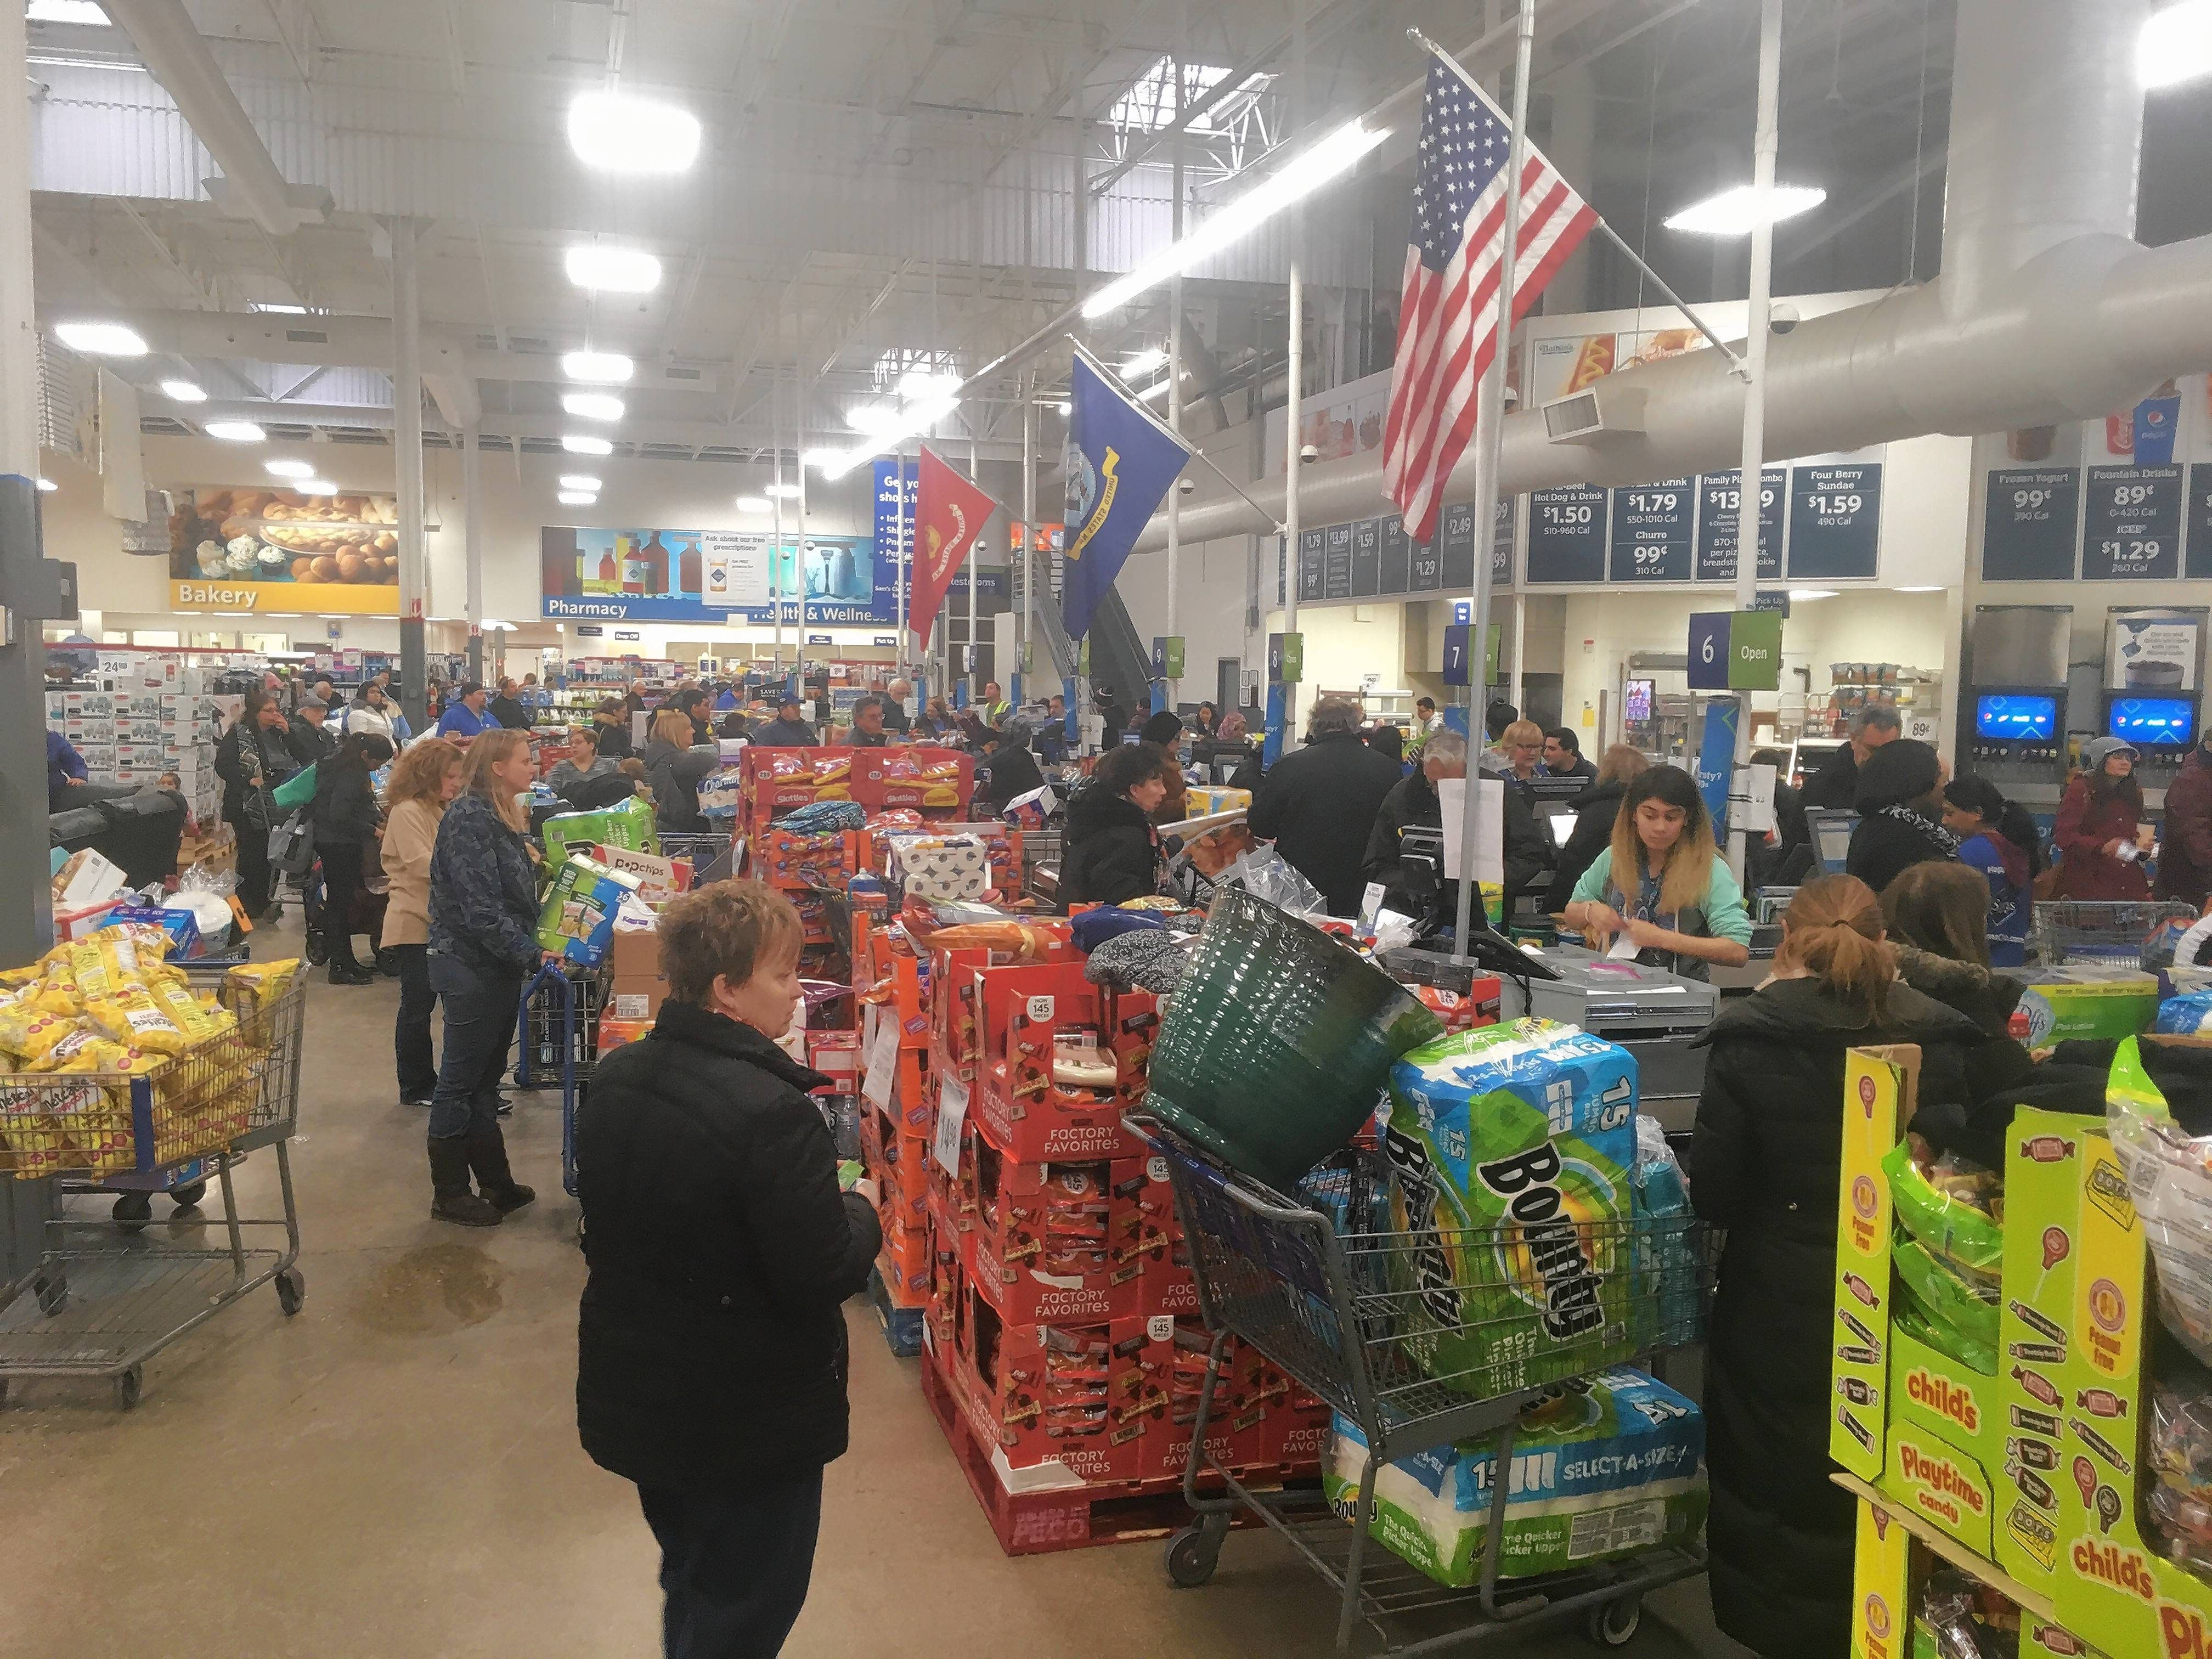 Shoppers flocked to the Sam's Club in Wheeling to get discounts Friday, a day after the company announced it was closing the store and five others in the suburbs.